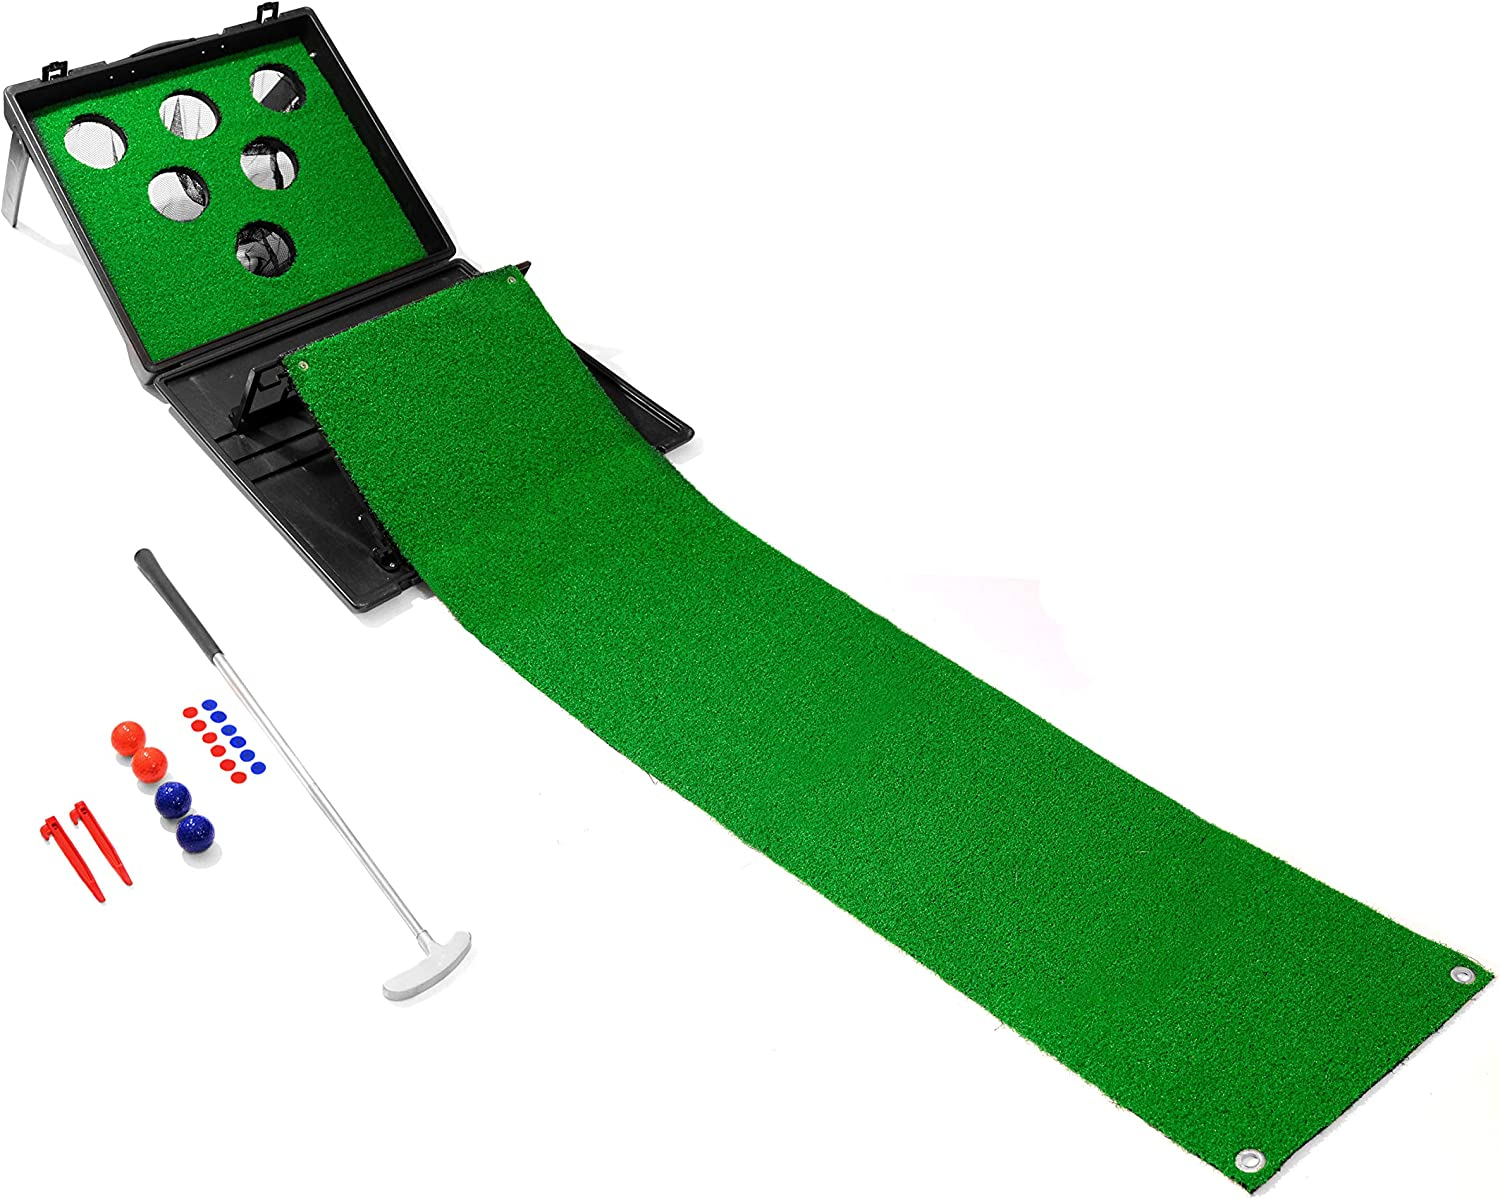 Yard Games Putter Pong Putting Game with Putter and Golf Mat